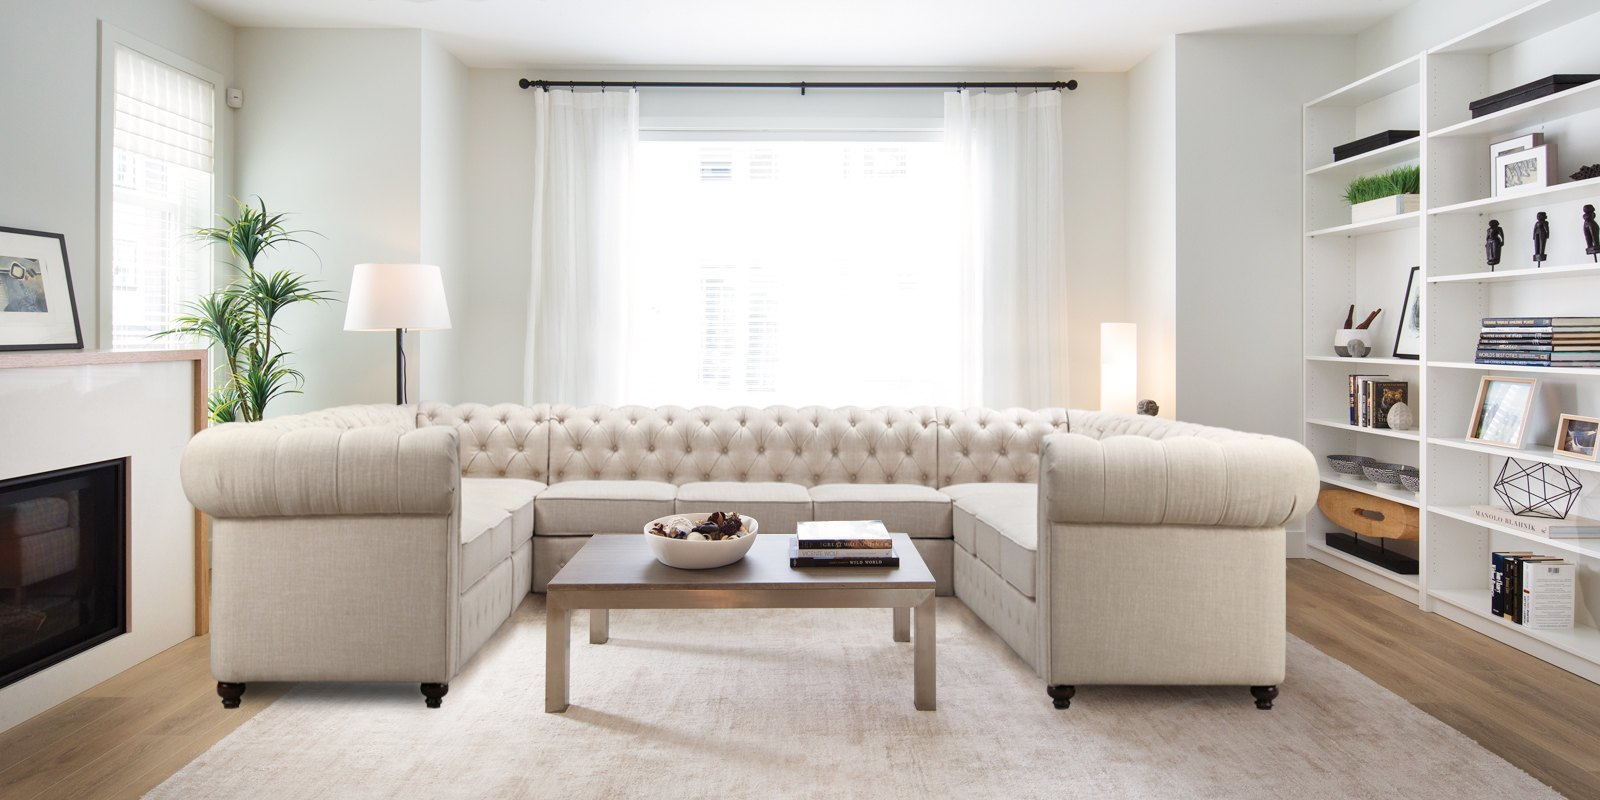 Impressive Chesterfield U Shape Sectional Sofa In Beige Colour